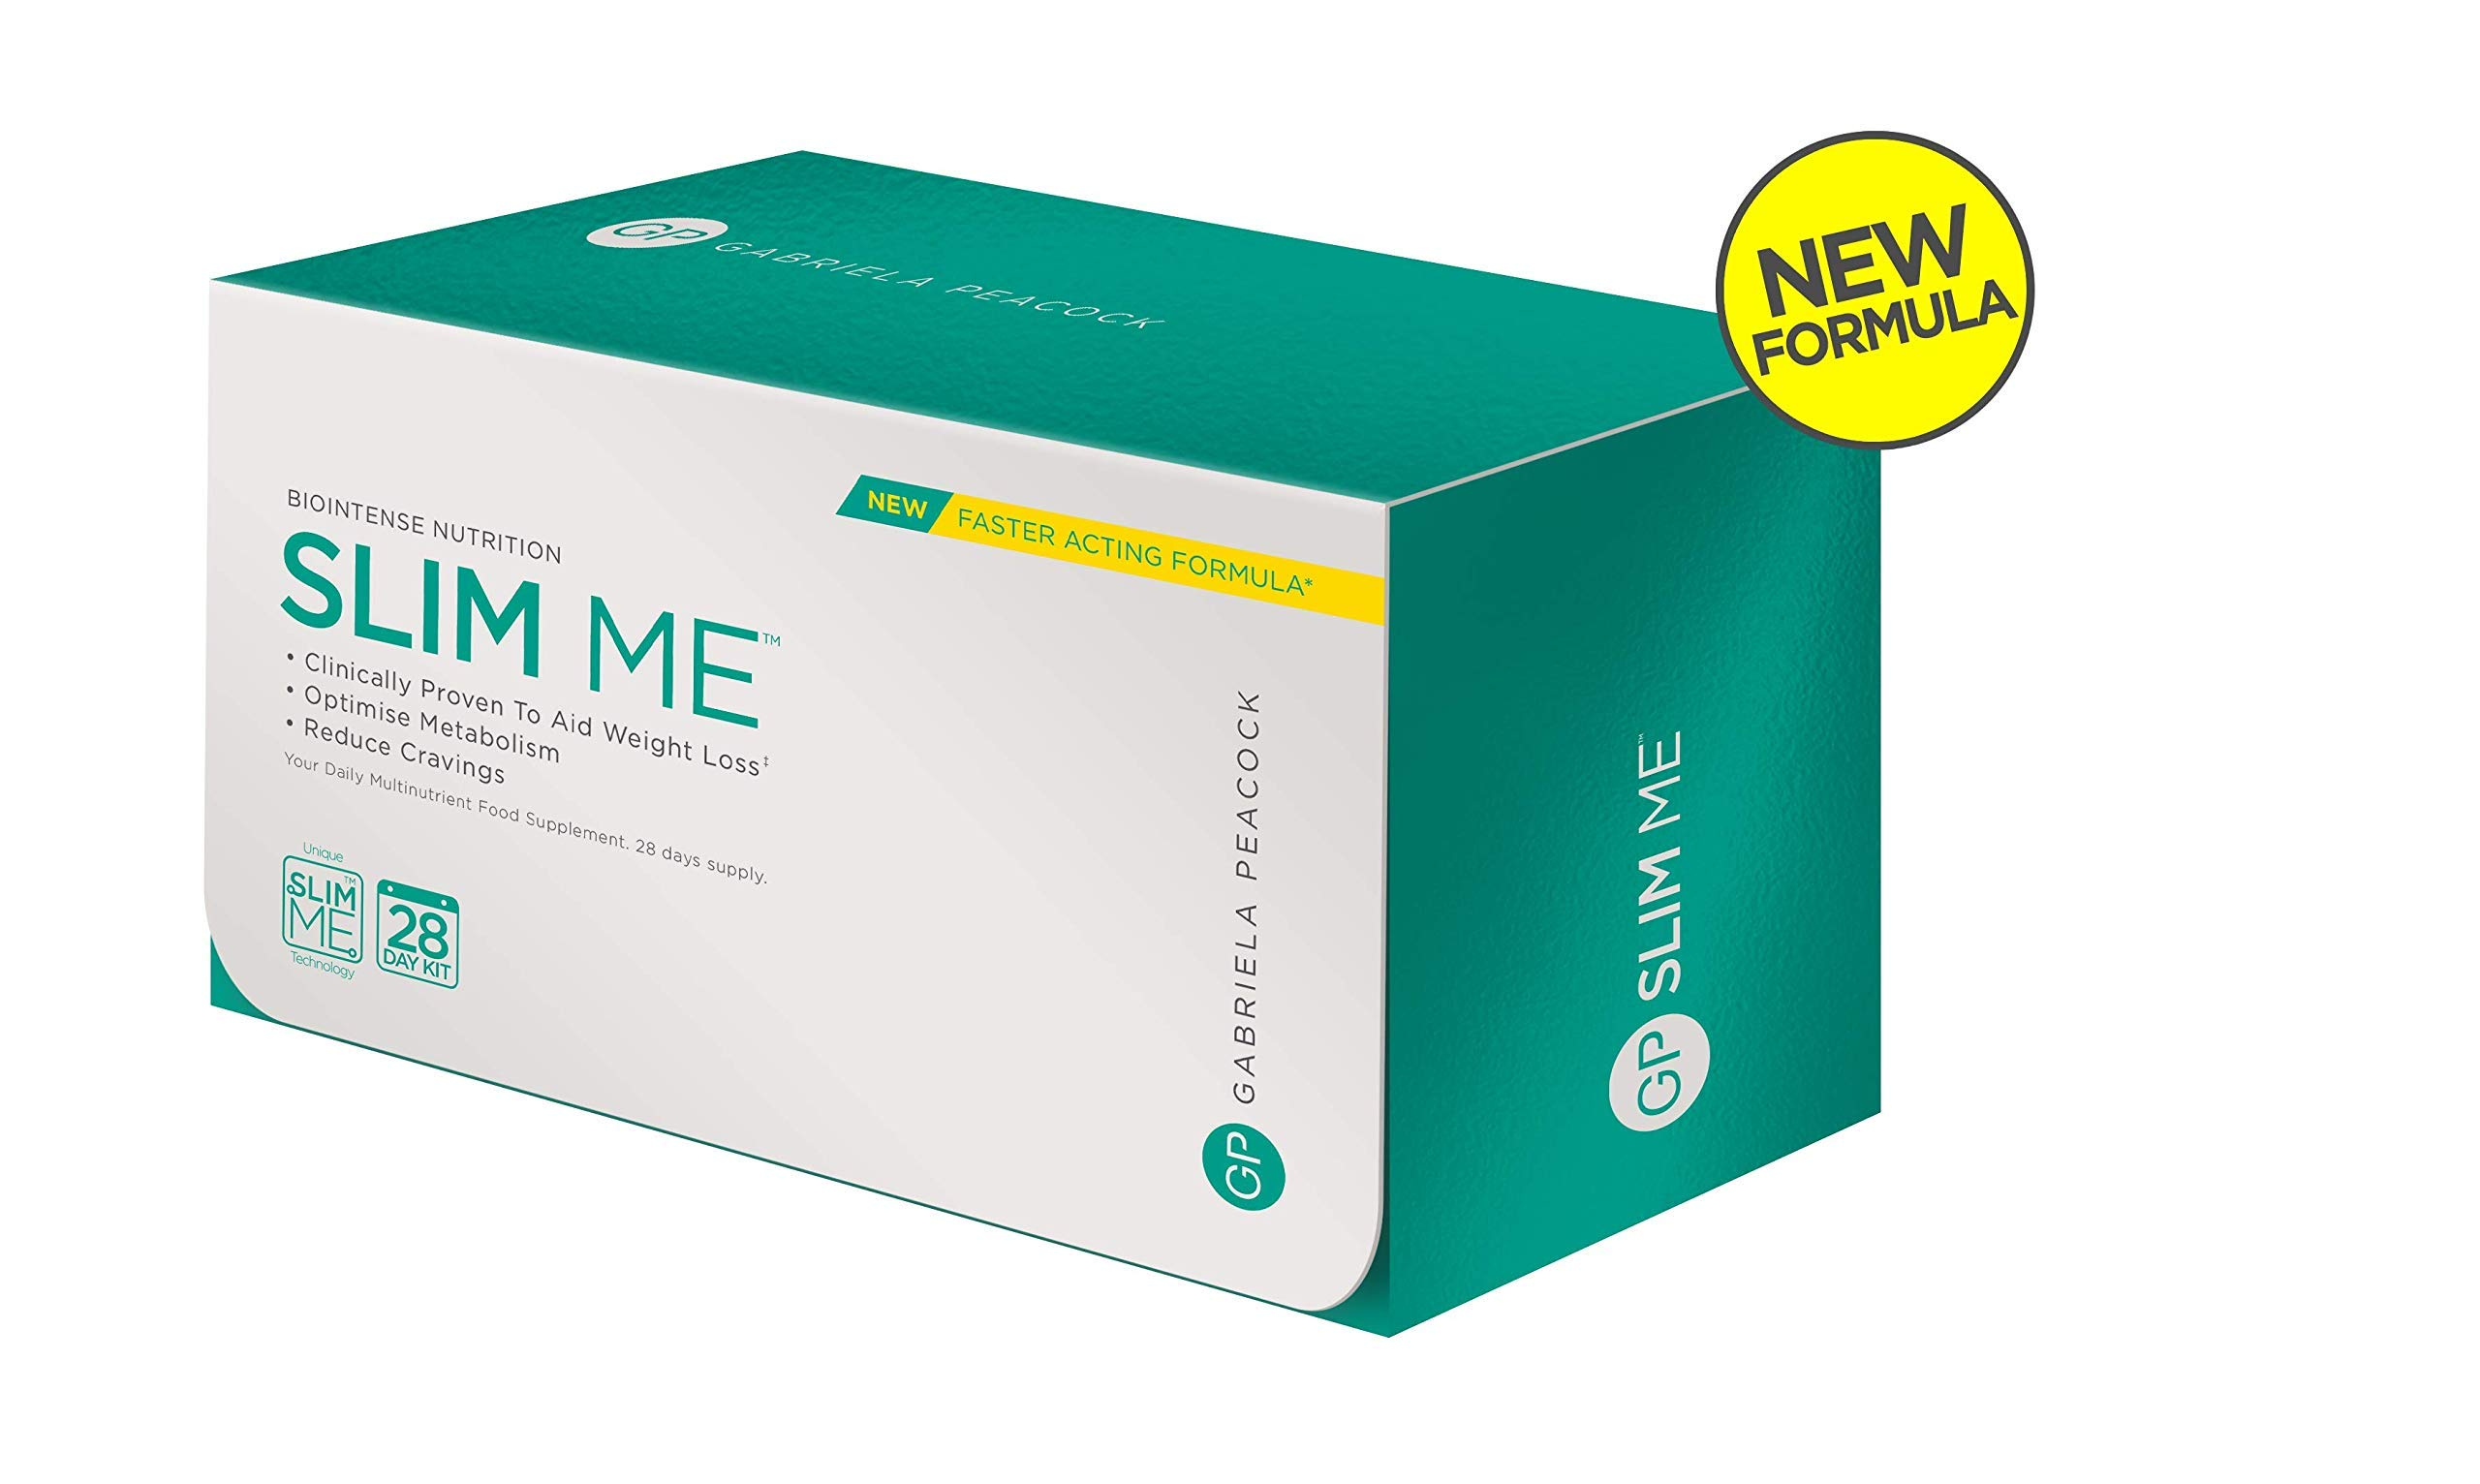 New & Improved Slim Me 28 Days Slimming Supplements Kit - Powerful Slimming Supplement - with Glucomannan to Suppress Appetite & Regulate Blood Sugar - 28 Days Supply